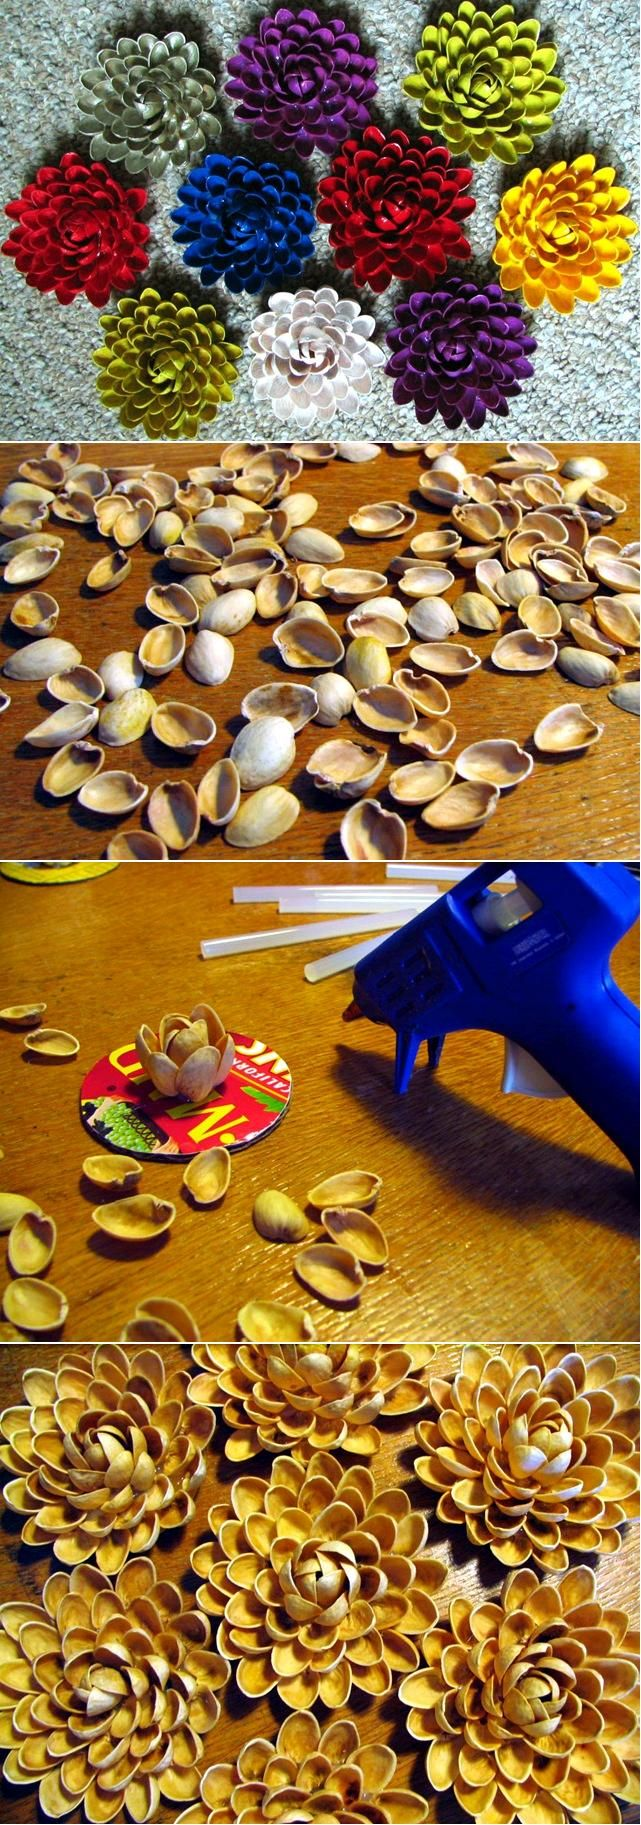 DIY Pistachios Shell Flower #DIY #Crafts #Projects #Flowers